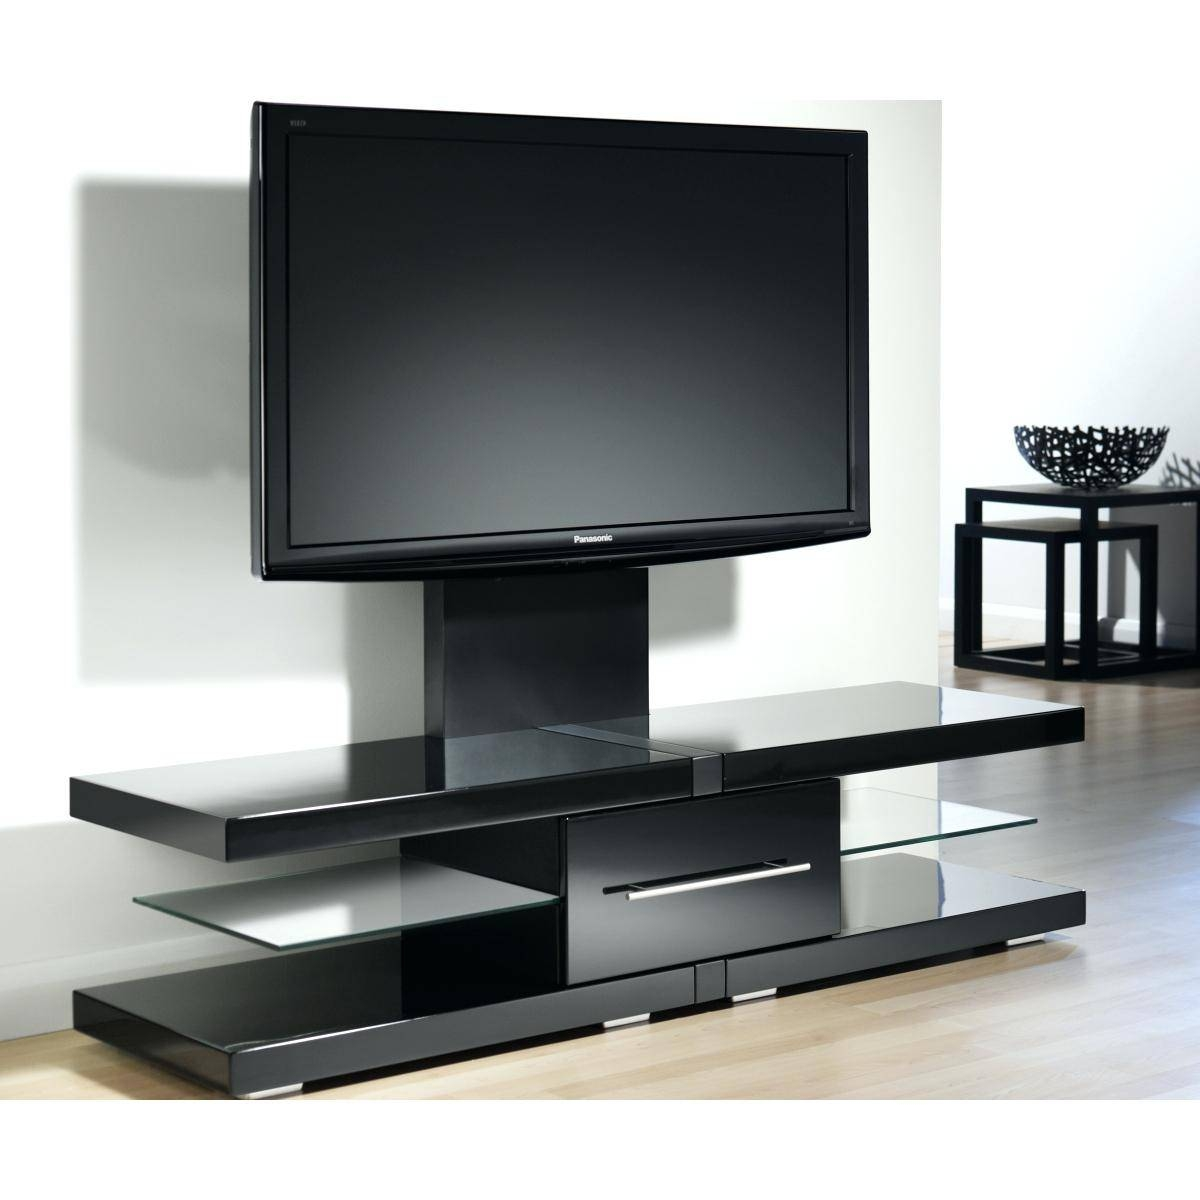 Tv Stand : Modern High Gloss Lacquer Tv Stand 17 Impressive Tv Regarding Stylish Tv Stands (View 14 of 15)